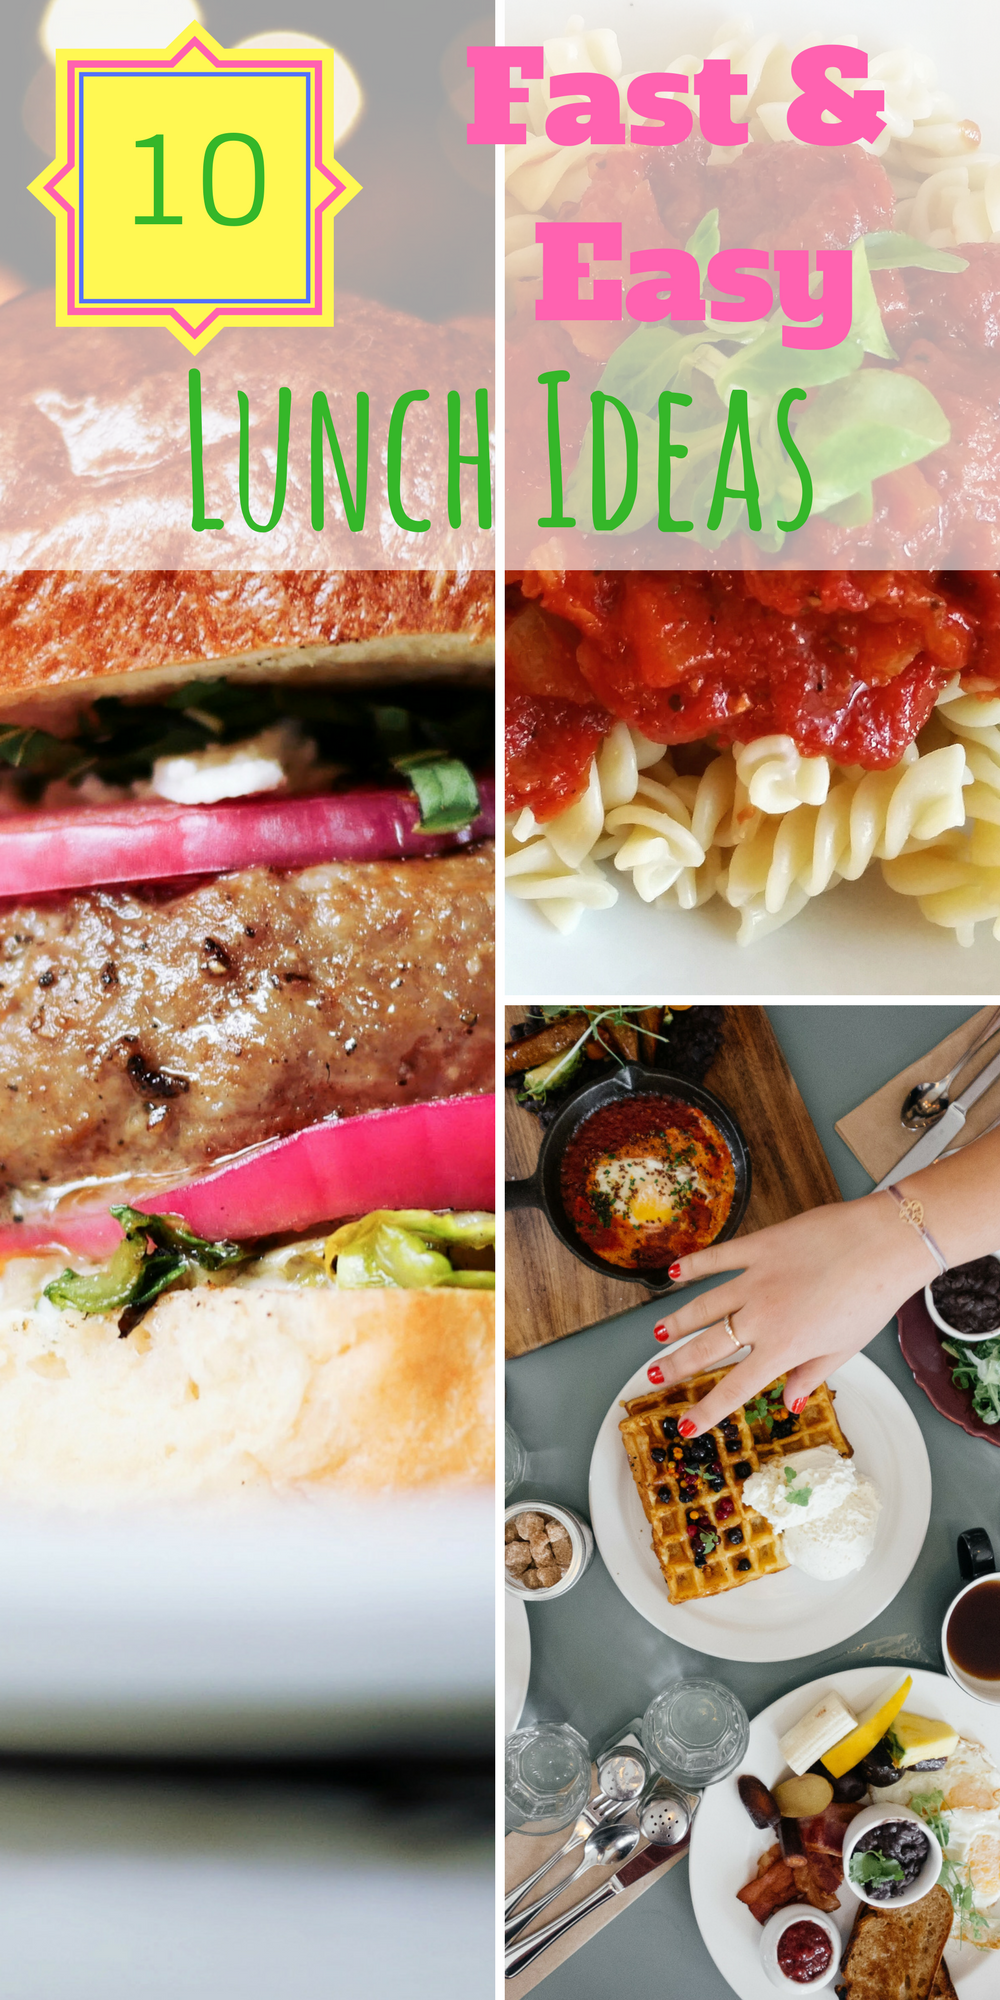 10 fast easy lunch ideas that will spice up your next lunch break 10 fast easy lunch ideas that will spice up your next lunch break forumfinder Images